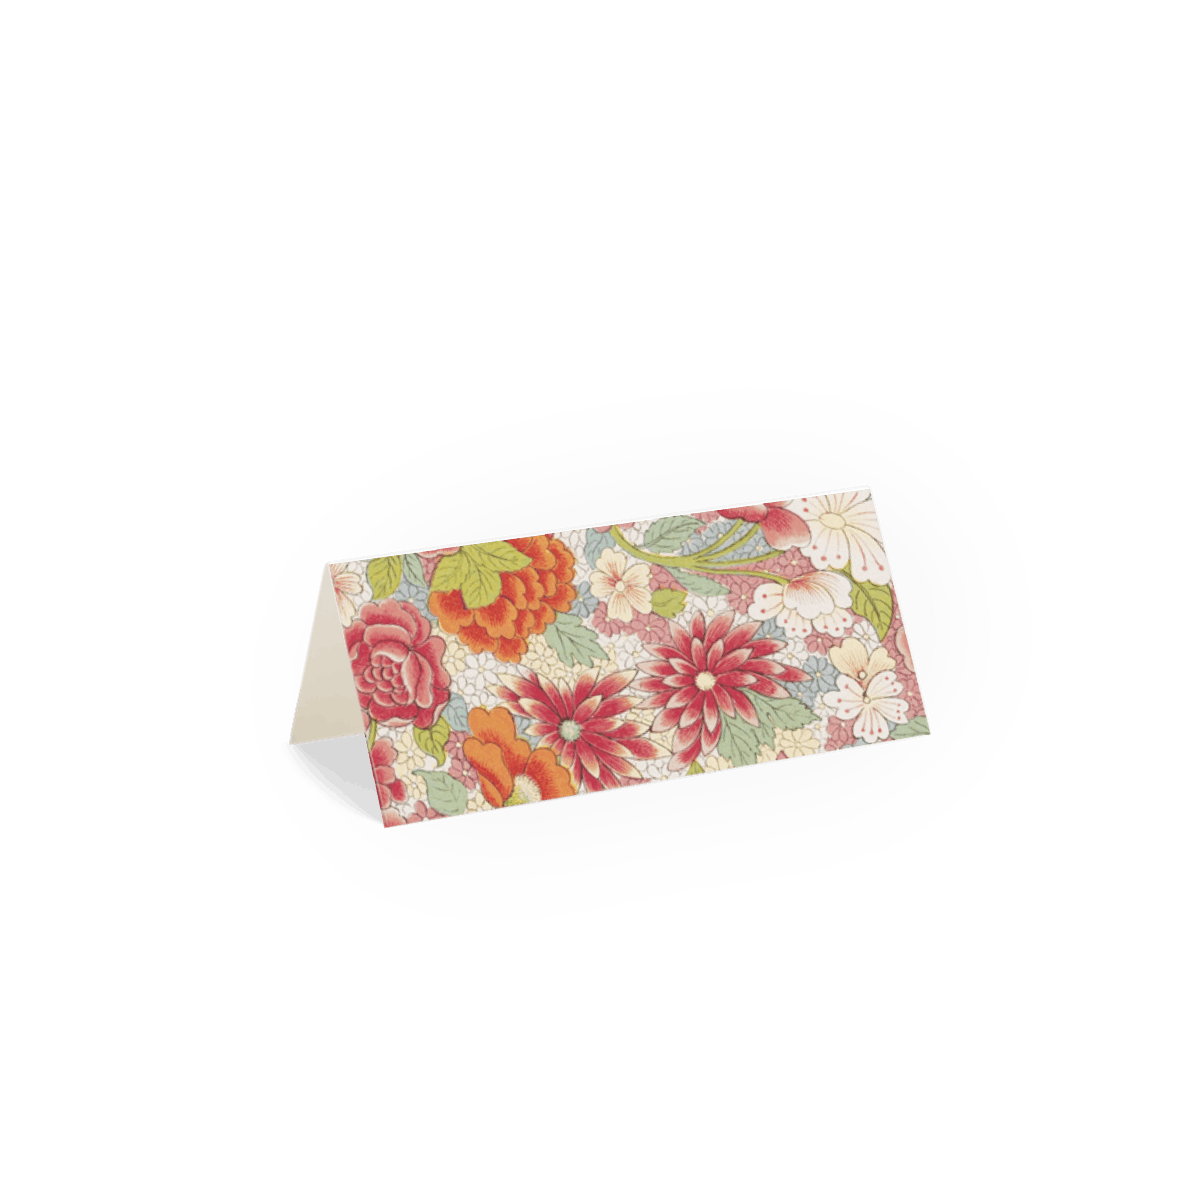 Https%3a%2f%2fwww.papier.com%2fproduct image%2f20206%2f15%2fred roses 5171 back 1488482461.png?ixlib=rb 1.1